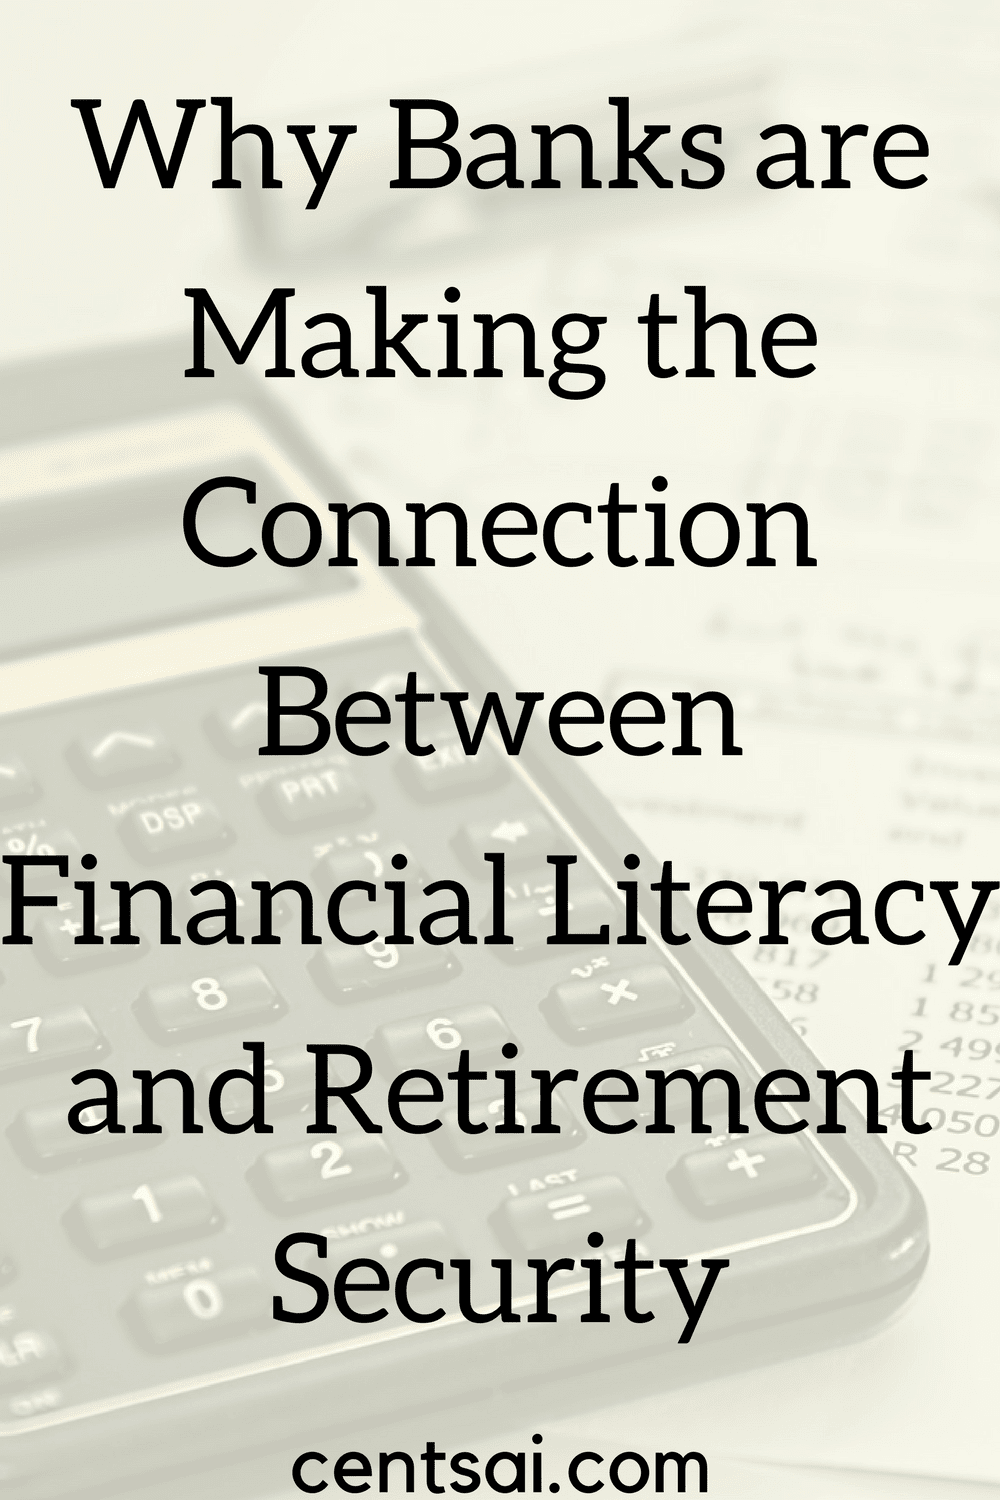 Why Banks are Making the Connection Between Financial Literacy and Retirement Security